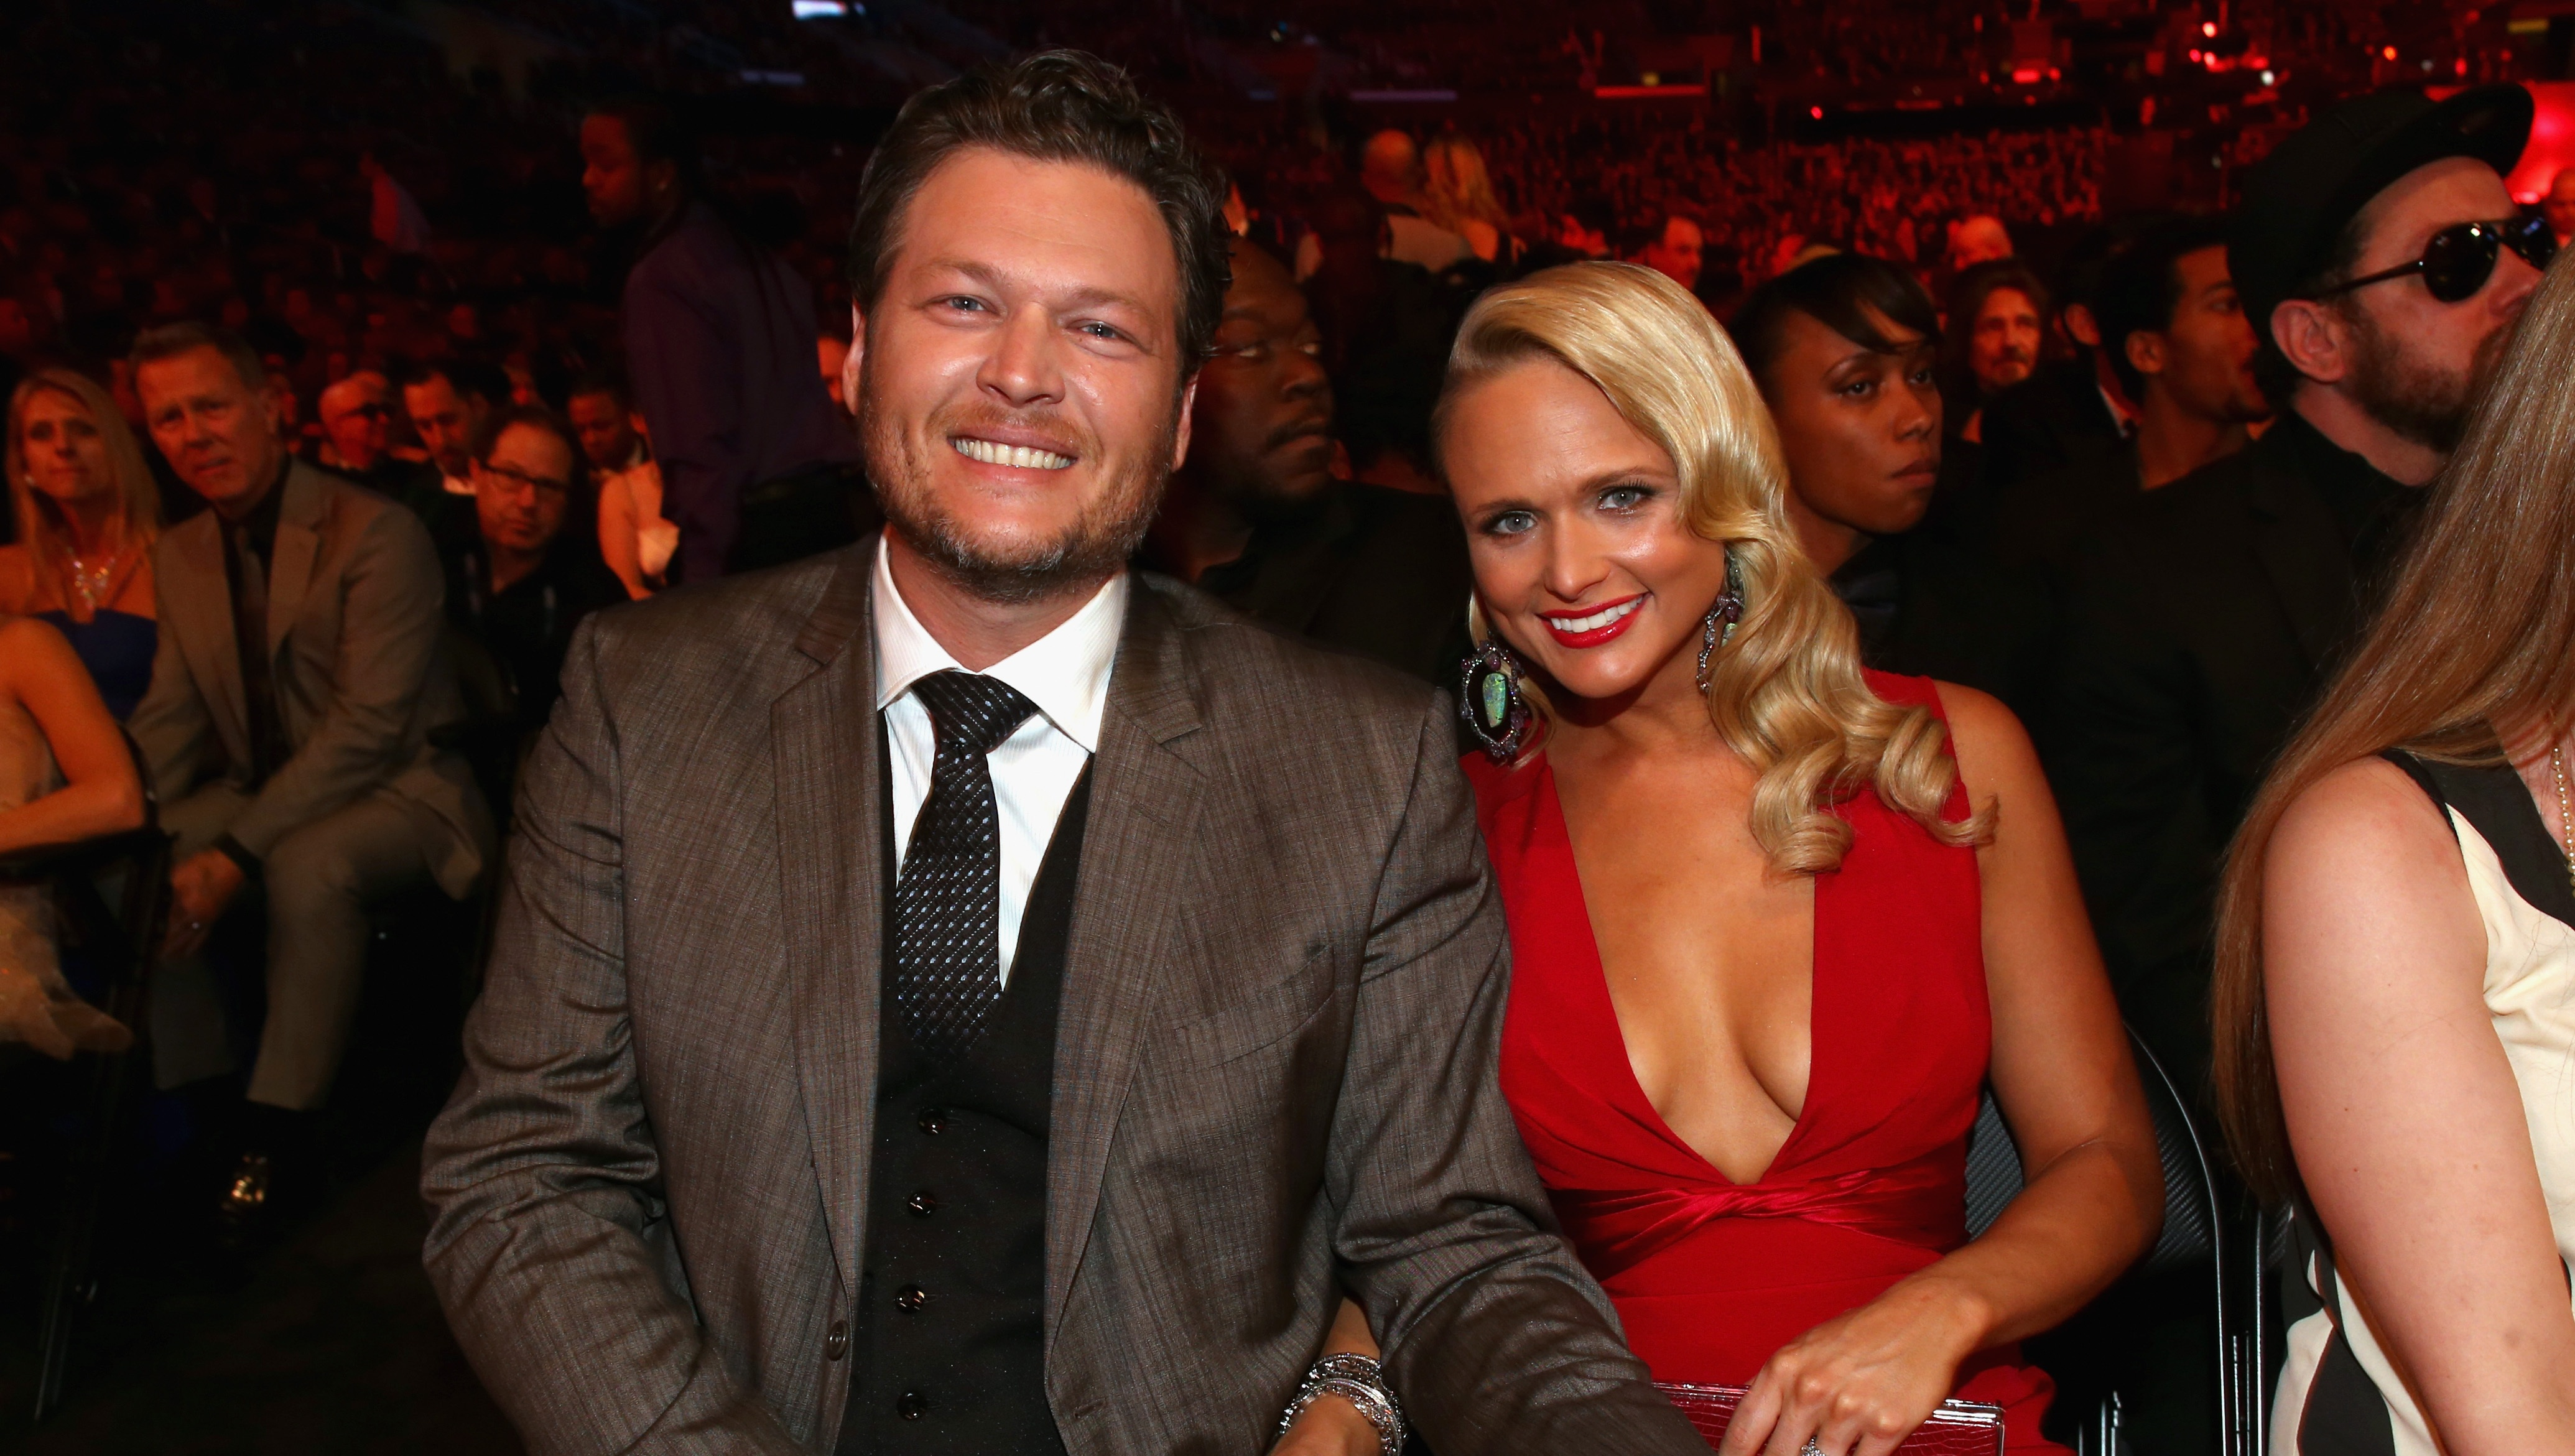 Blake Shelton and Miranda Lambert posing